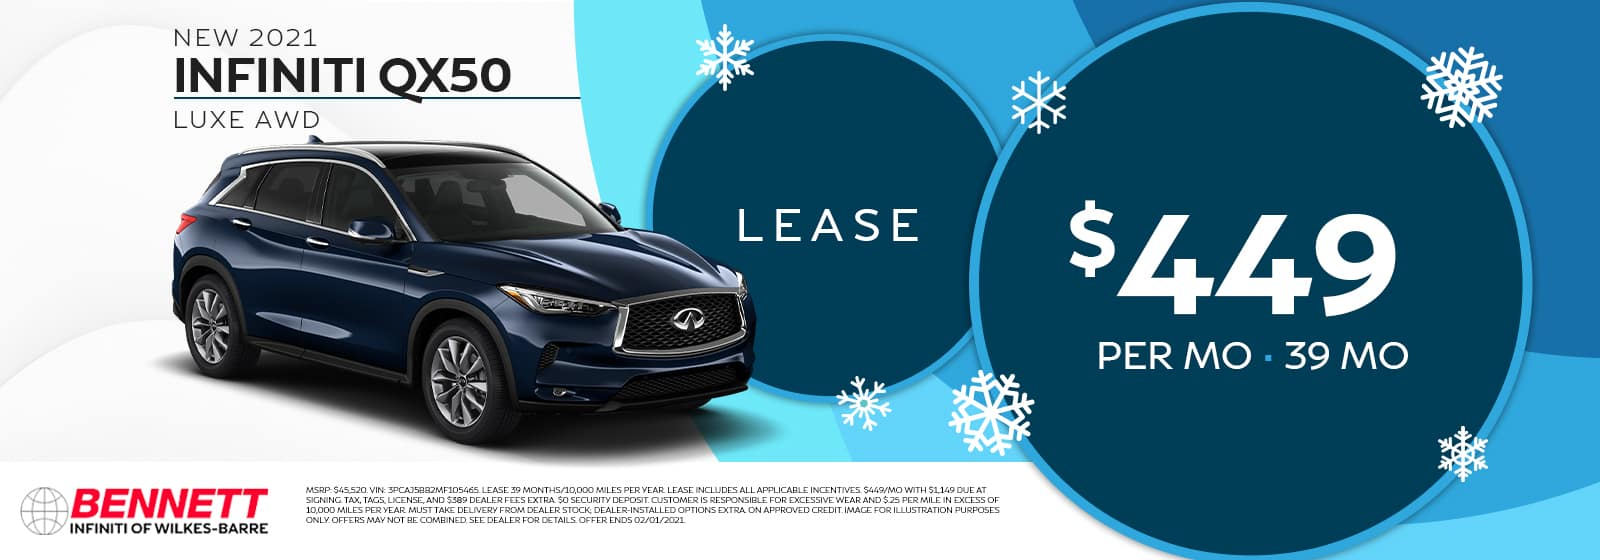 New 2021 INFINITI QX50 LUXE AWD - Lease for $449 per month for 39 months.